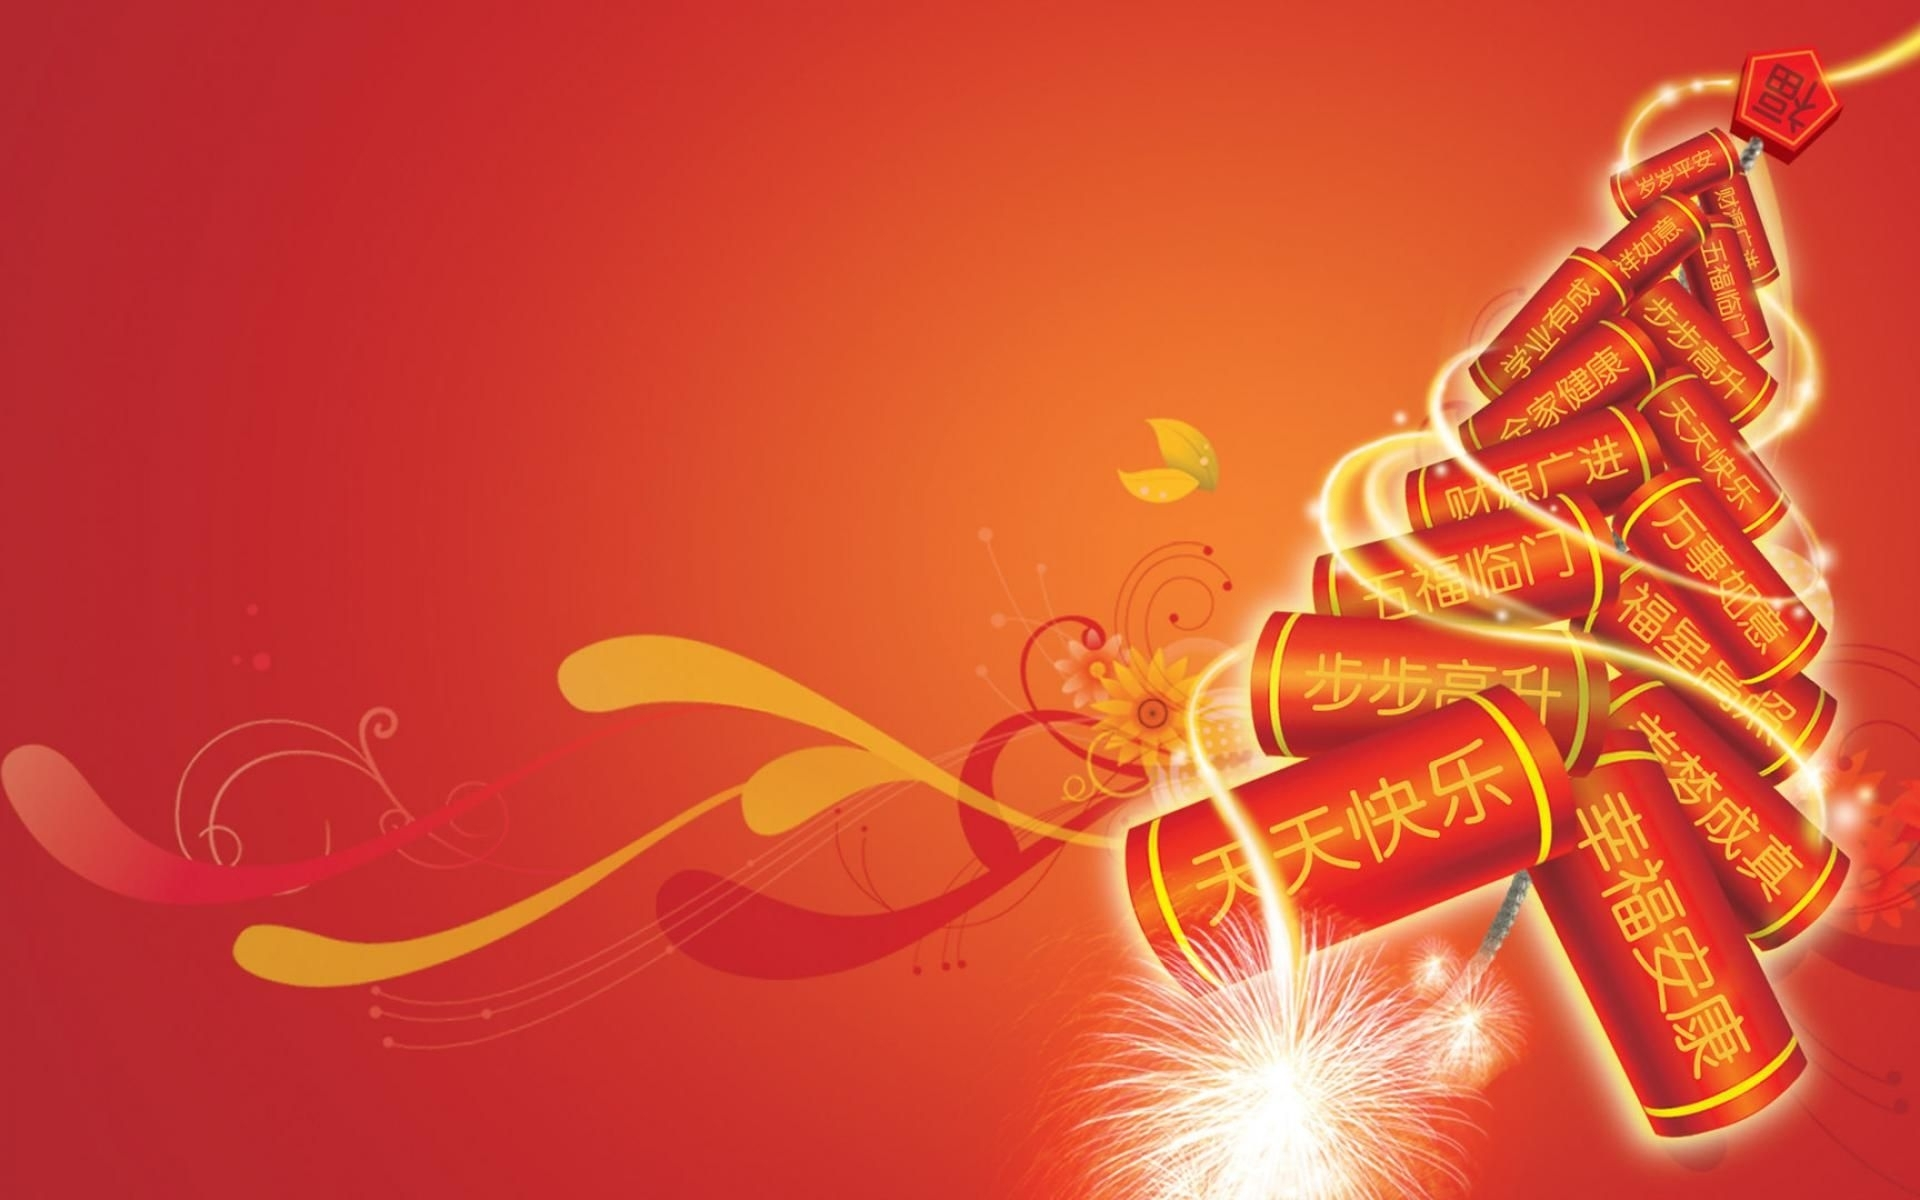 chinese new year backgrounds - wallpaper, high definition, high